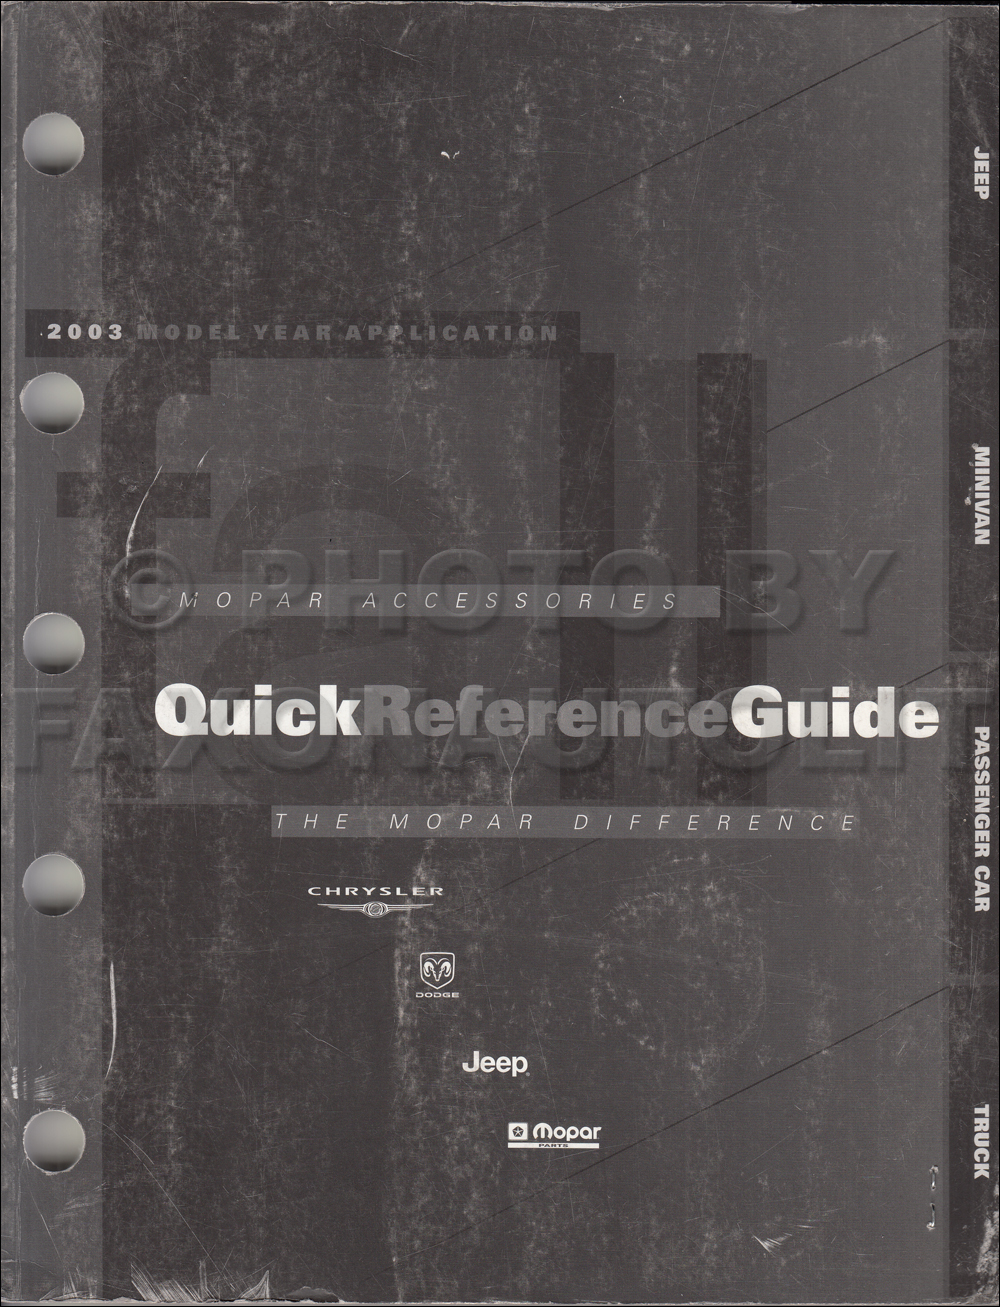 2003 Mopar Accessories Quick Reference Guide Original